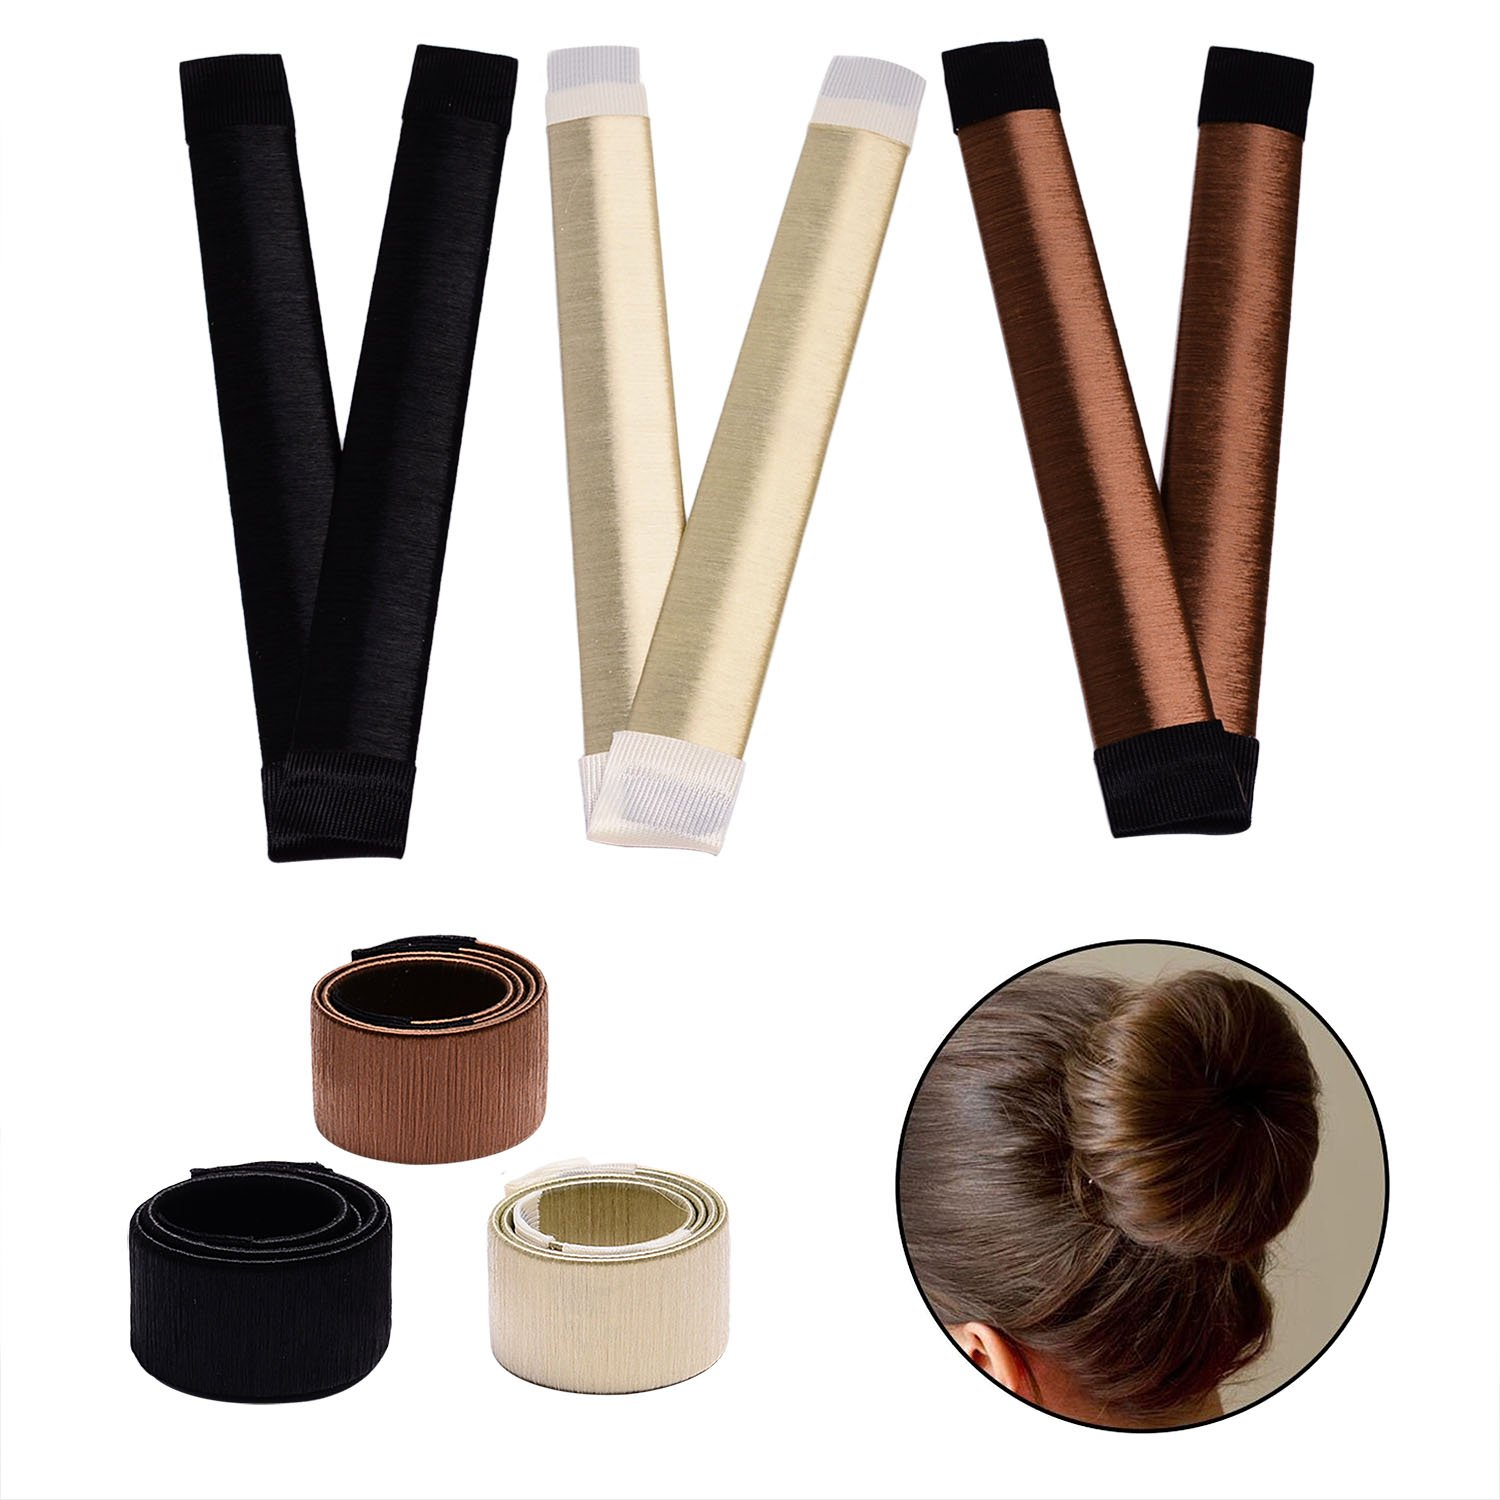 Hair bun maker-3 Pack Hair bun dount+10 Piece Professional Multicolor Plastic Hair Clips+Hair rope, Hair Styling Making DIY Curler Roller Hairstyle Tools by haomiao (Image #3)